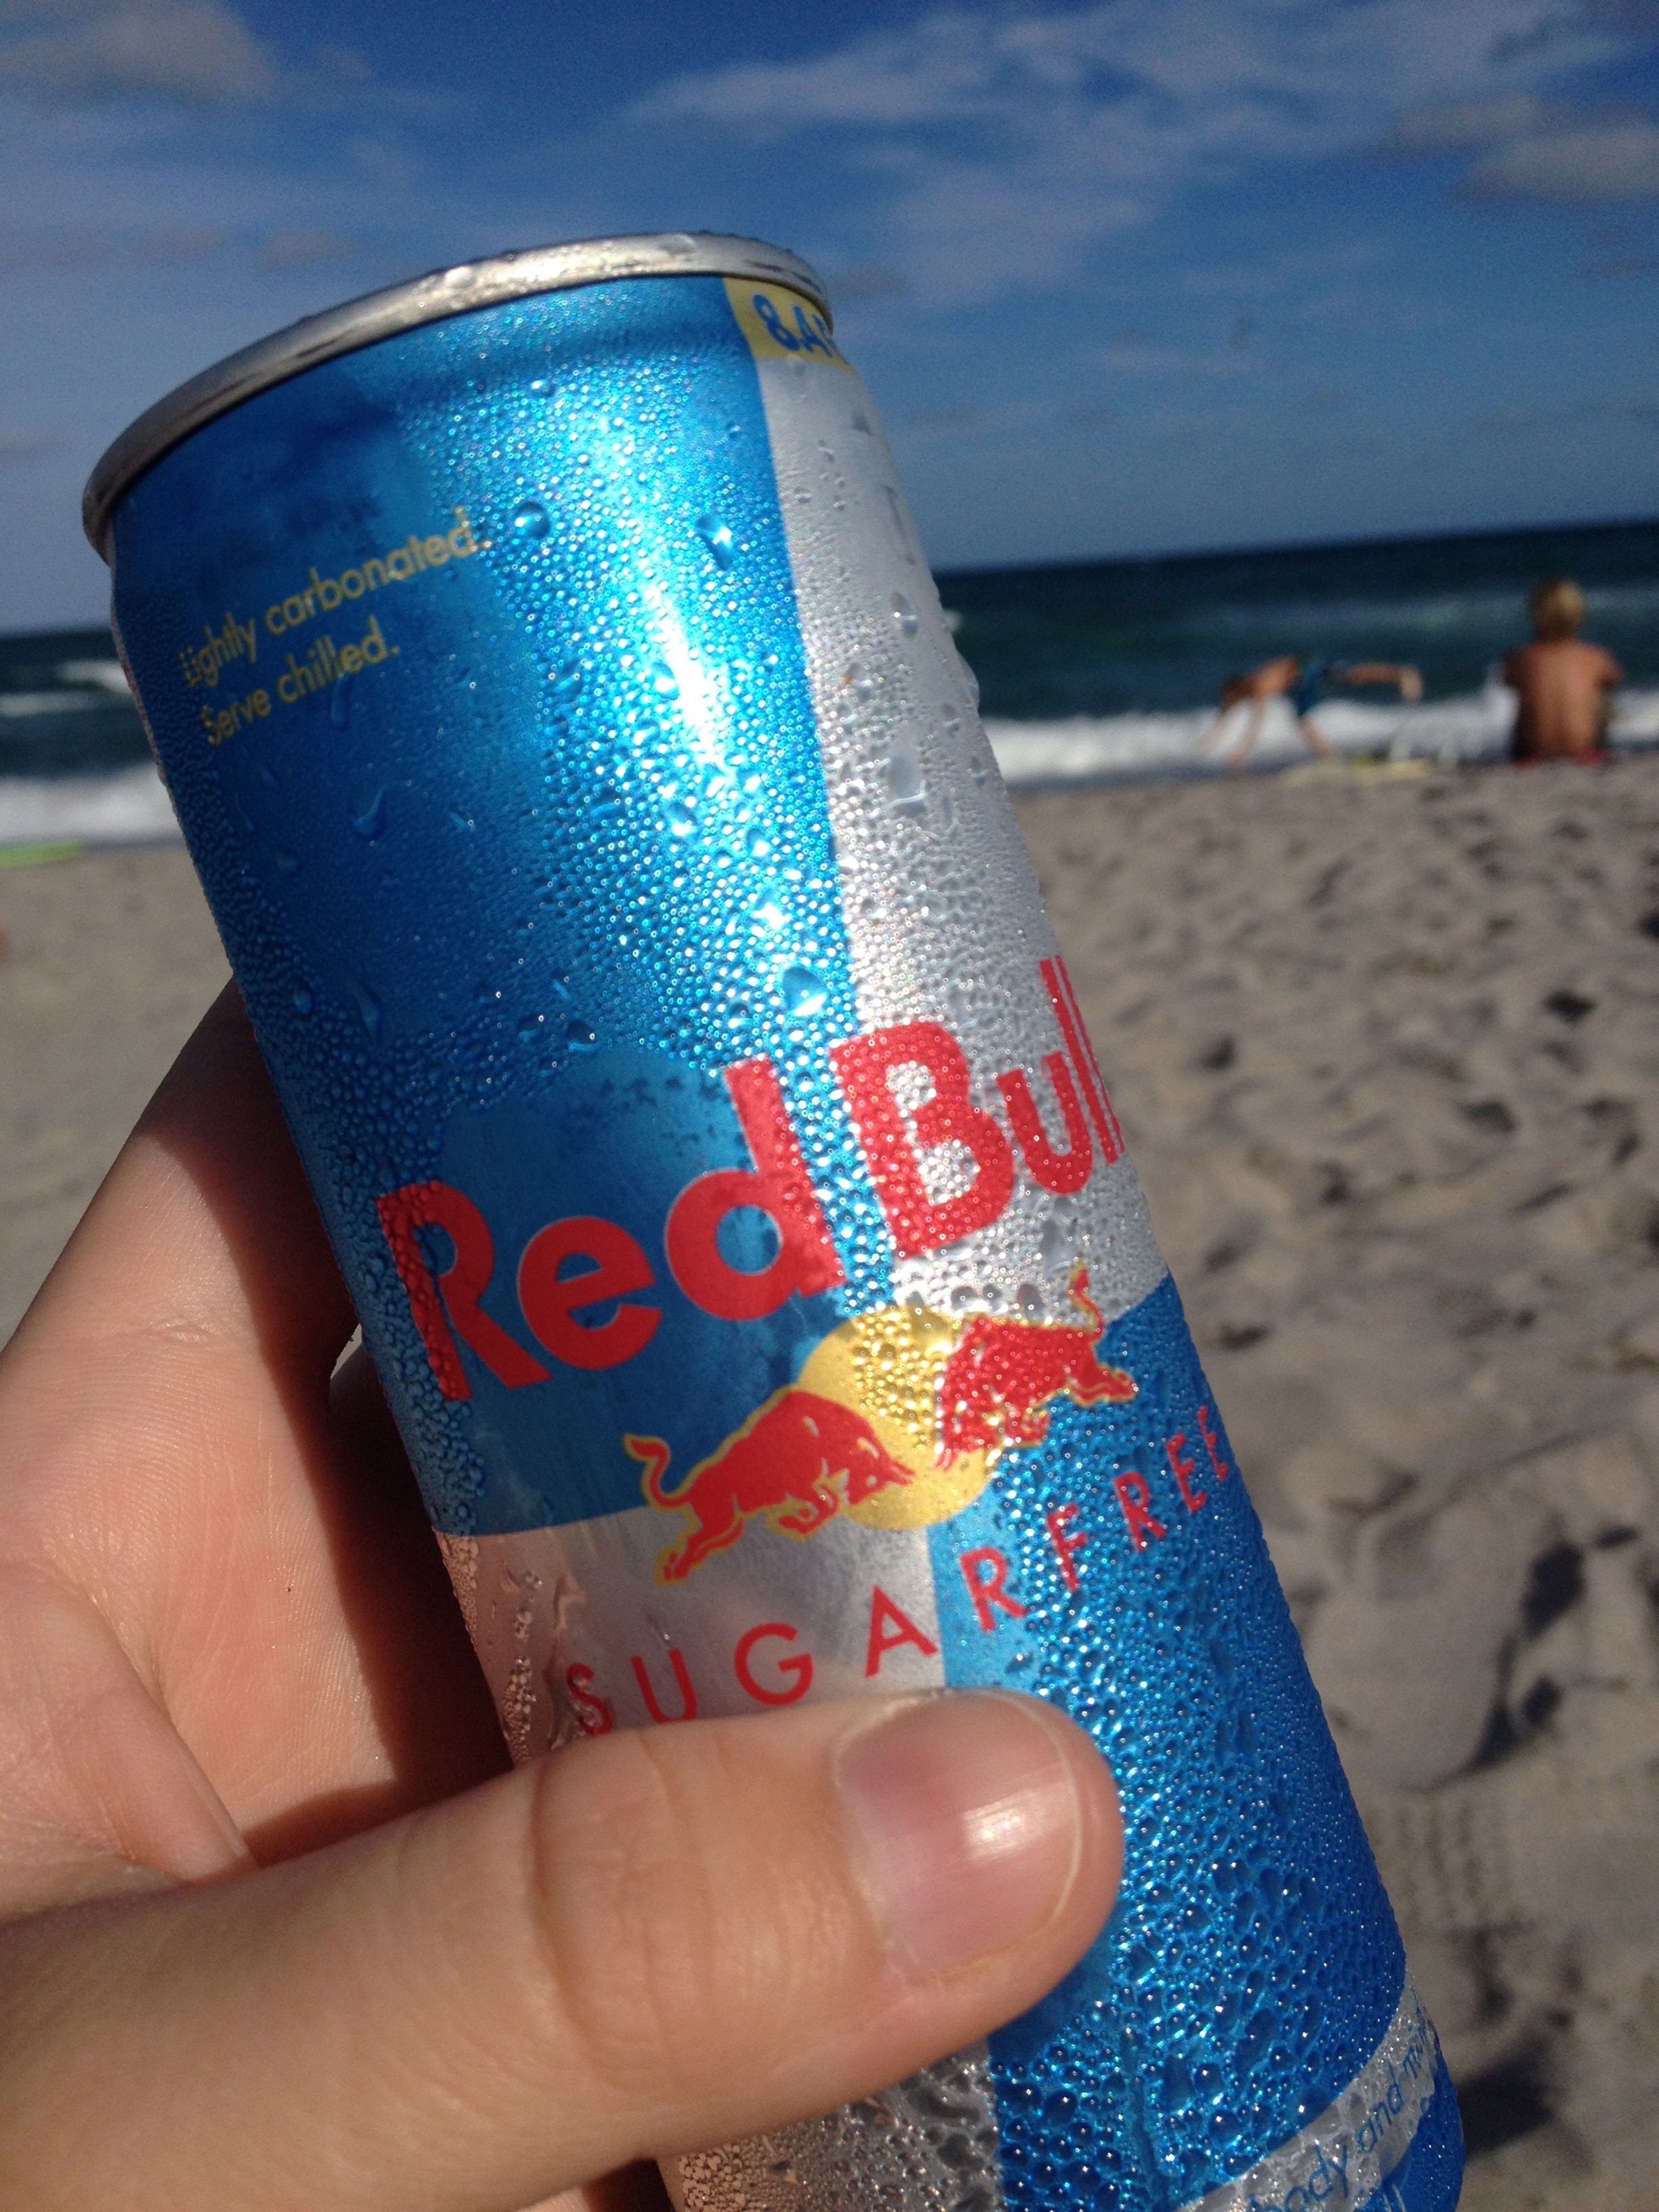 I went to ft lauderdale beach with my friend and was